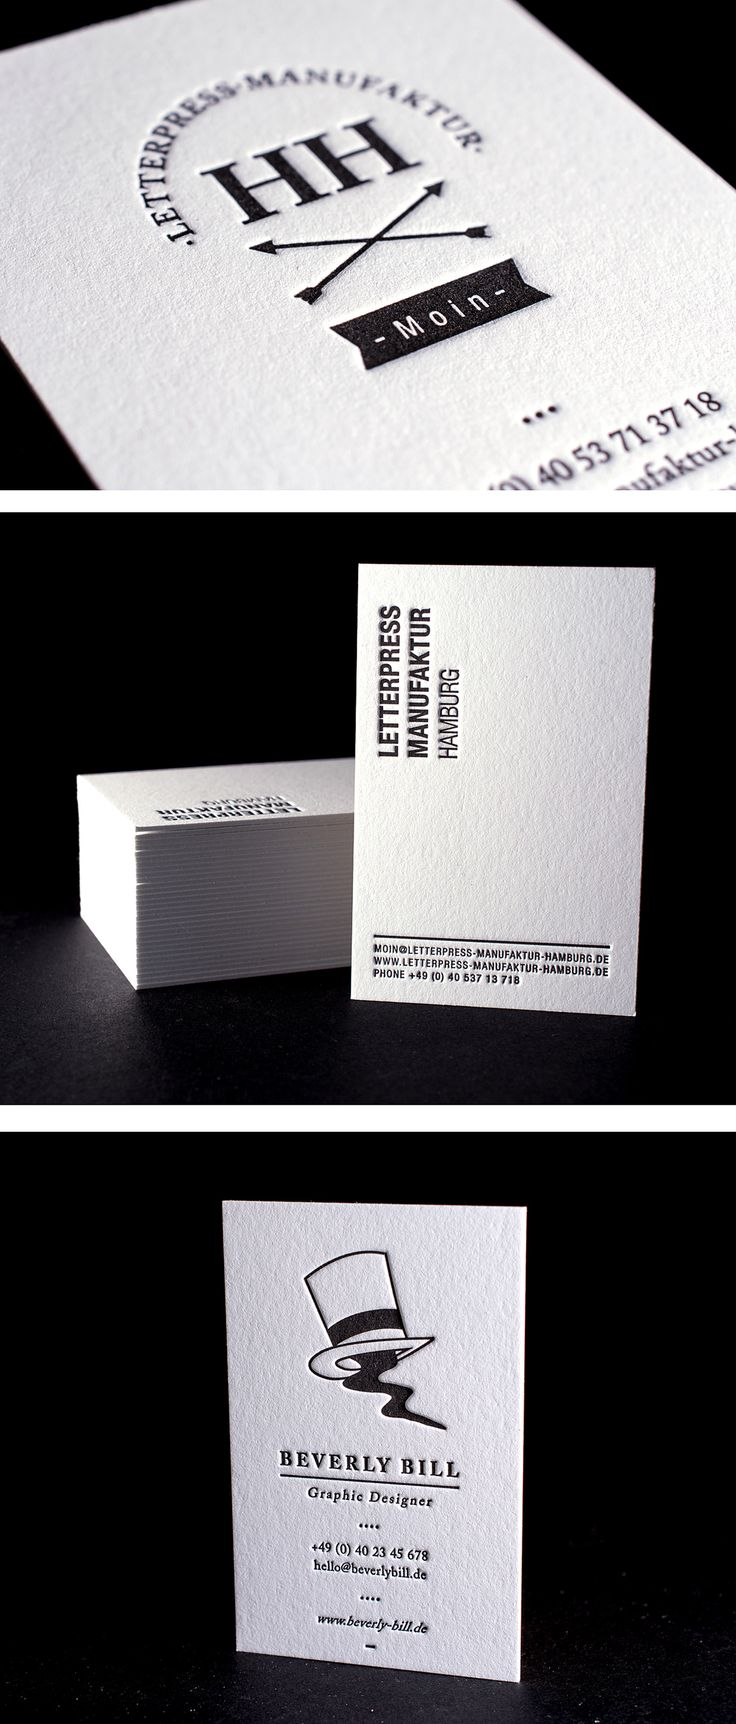 650 gsm Letterpress paper with 1.3 volume and deep impression printing | Jubilee-Offer for bw business cards at http://shop.letterpress-manufaktur-hamburg.de/